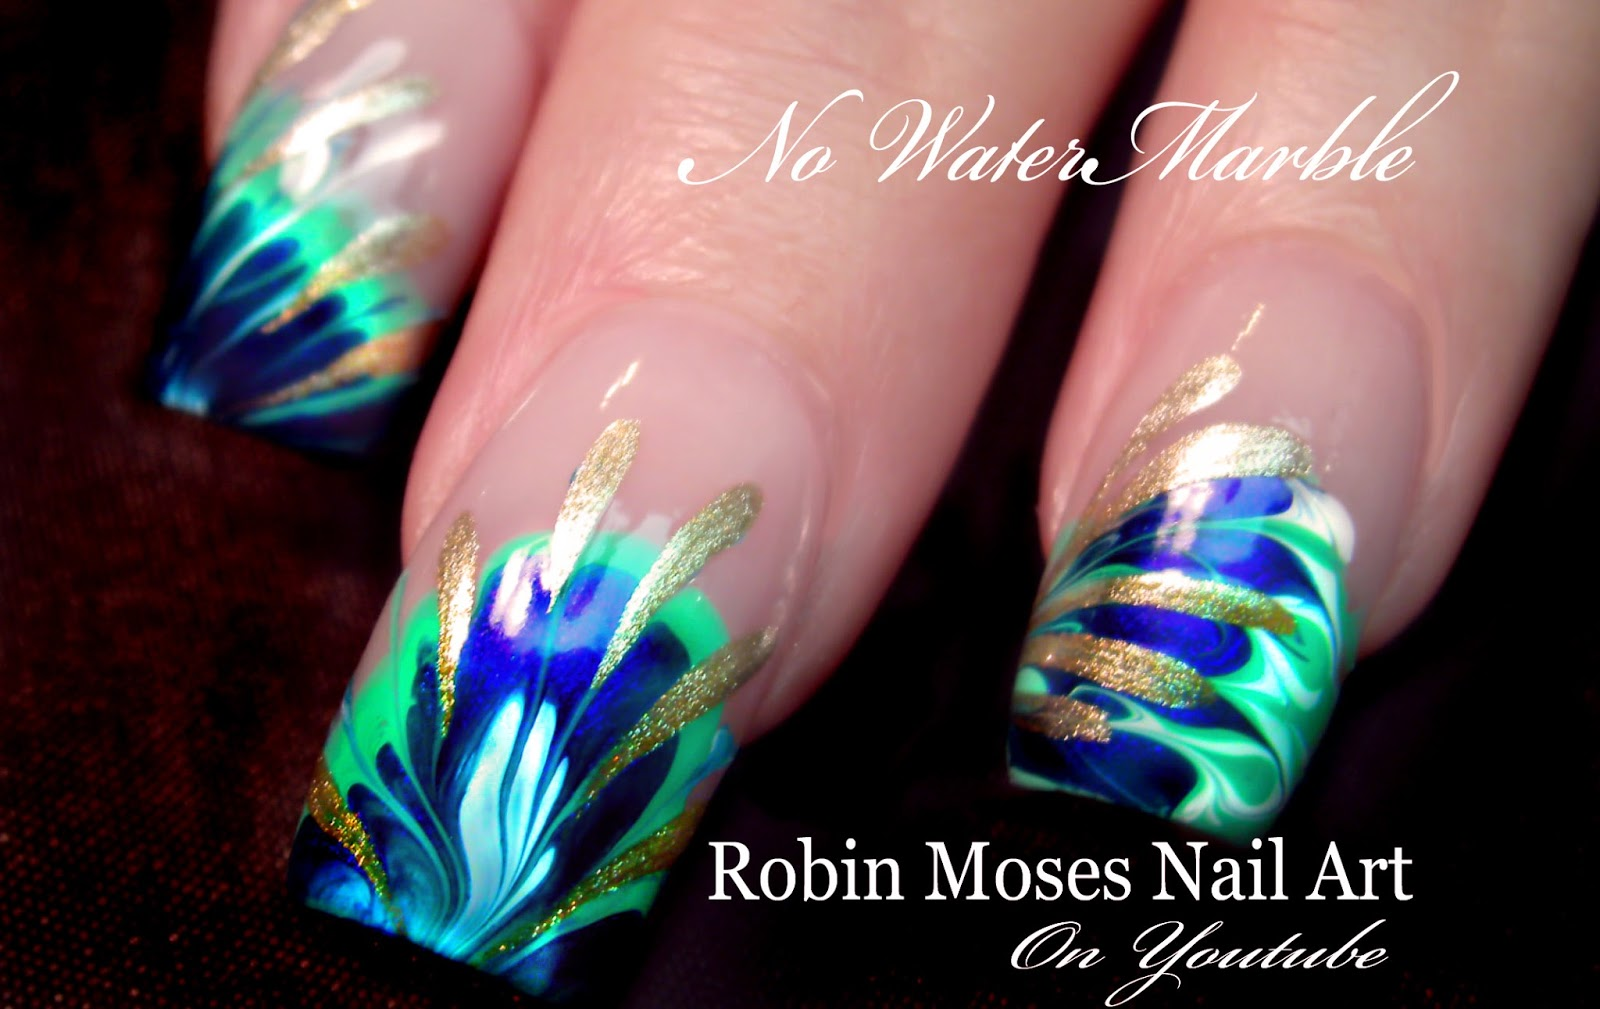 Robin moses nail art 3 different marble nail art without using no no water needed 3 different marble nail art tutorials prinsesfo Images